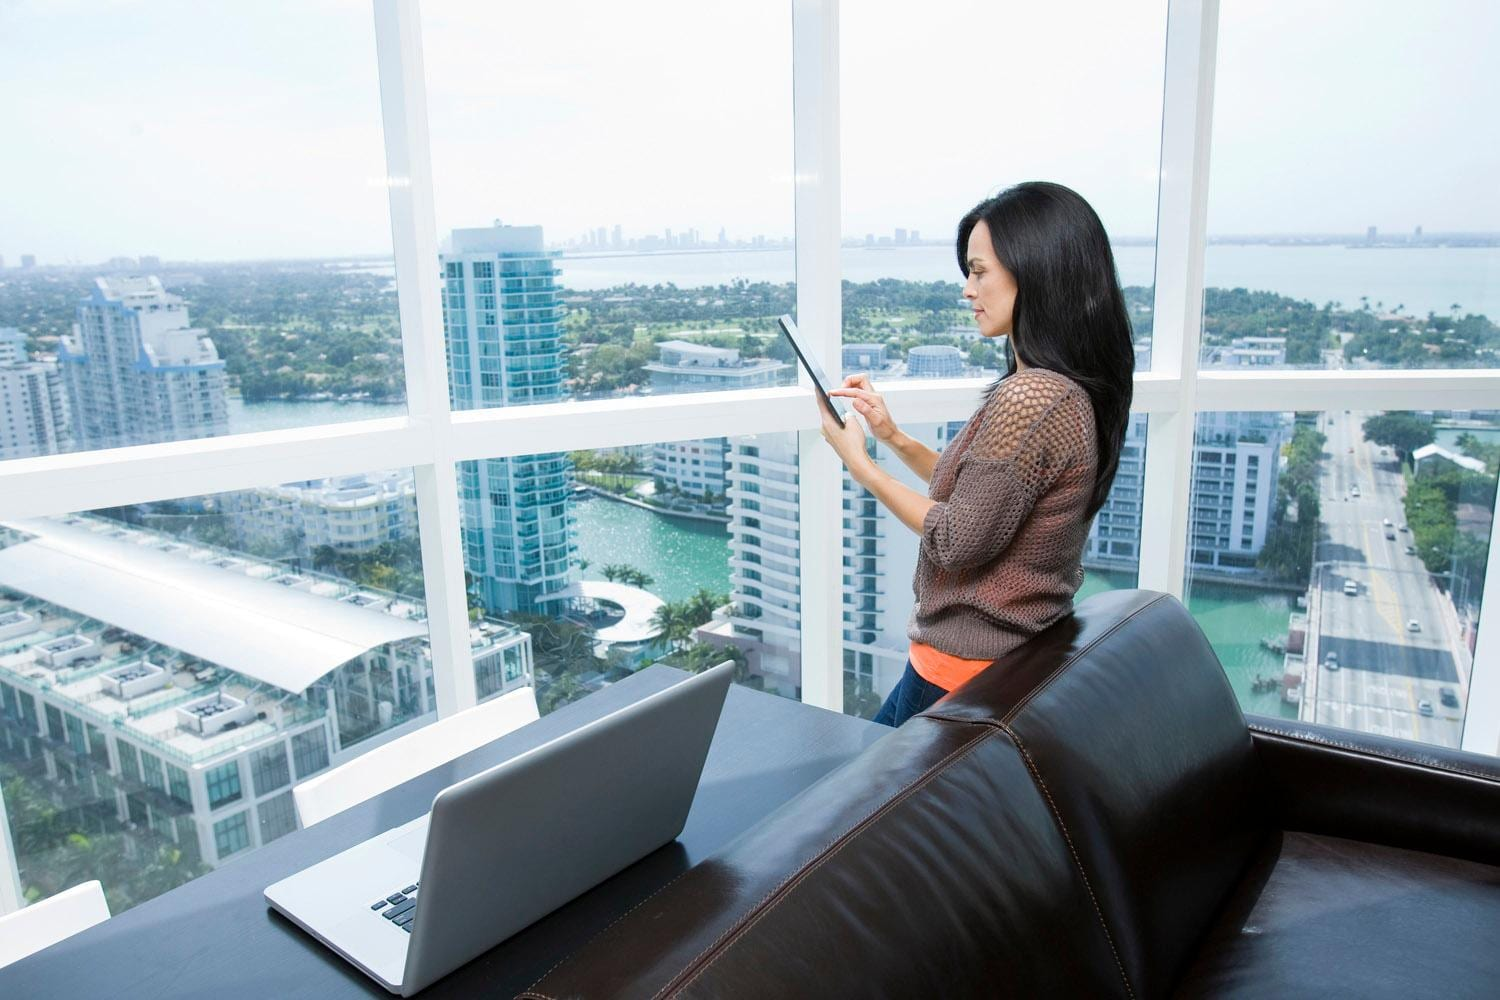 Businesswoman using digital tablet in office overlooking cityscape